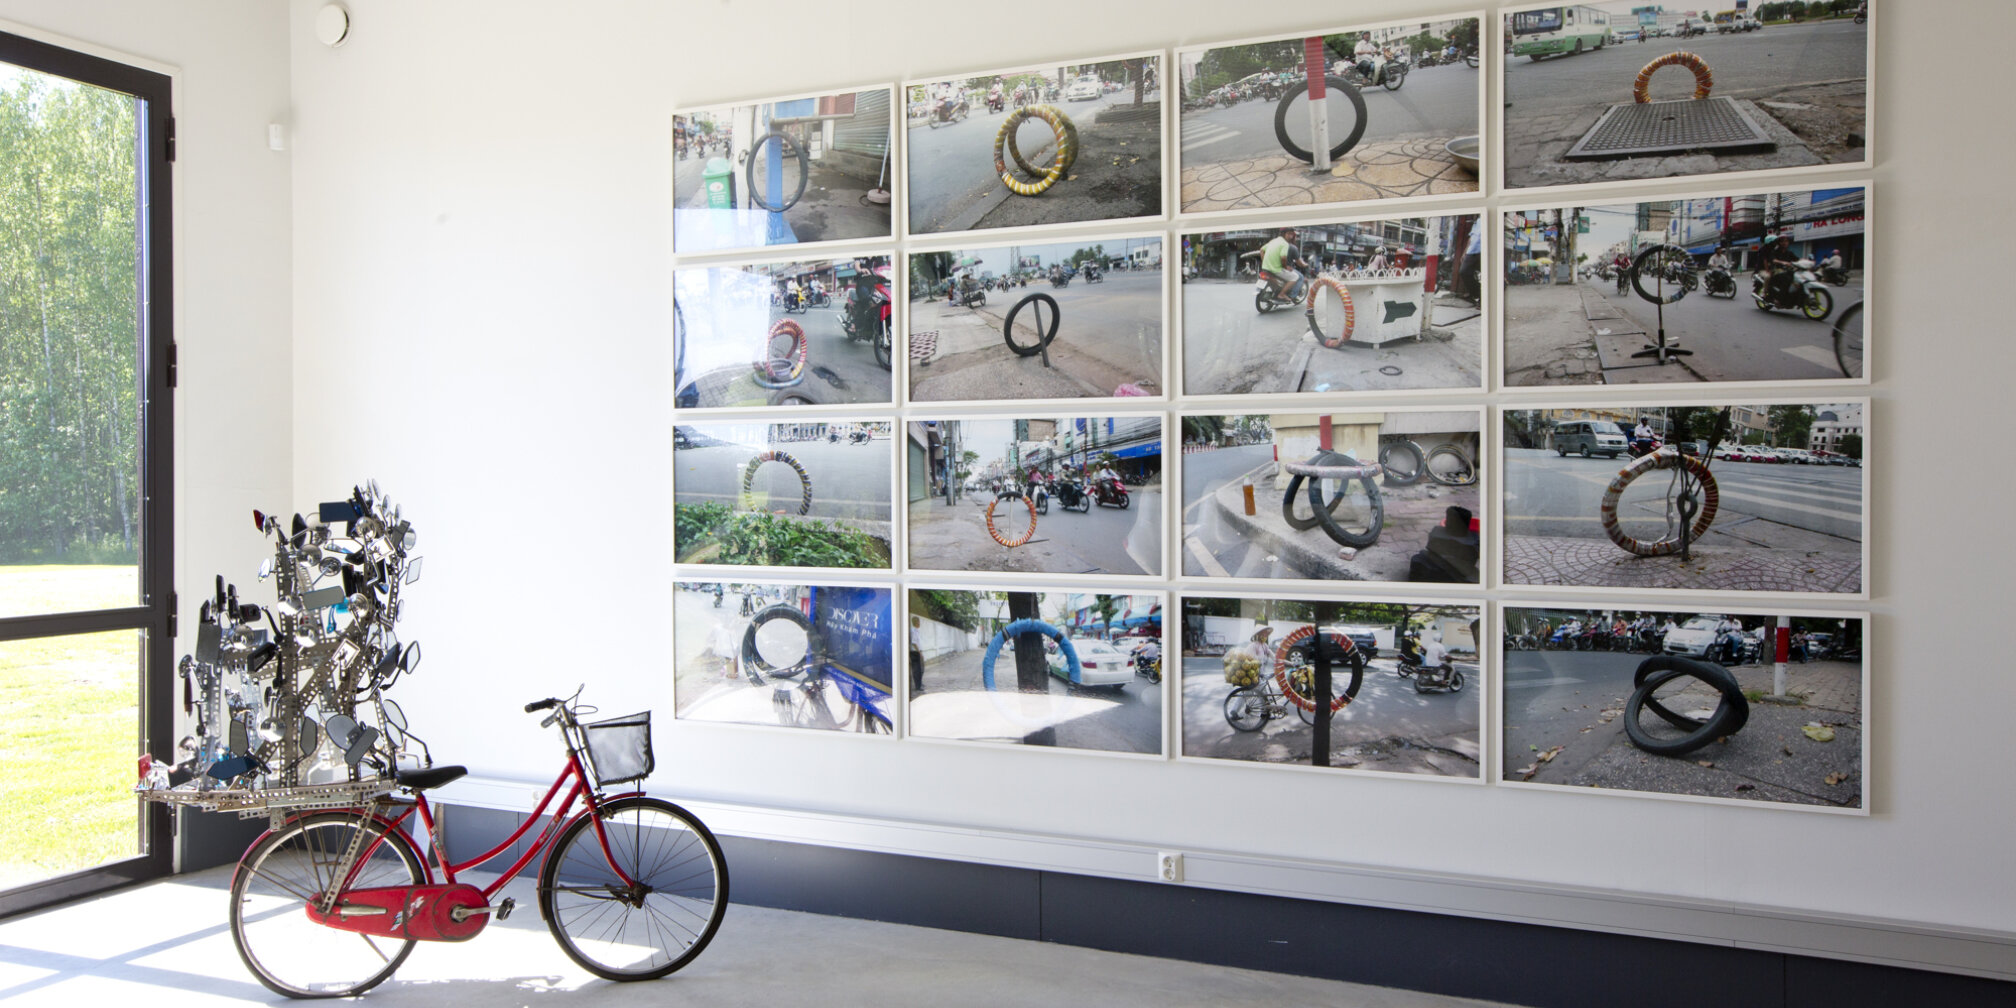 Dinh Q Lê, I am Large. I Contain Multitudes, 2009 and Bicycle Repair Signals, 2009. Installation view. Photo: David Bebber